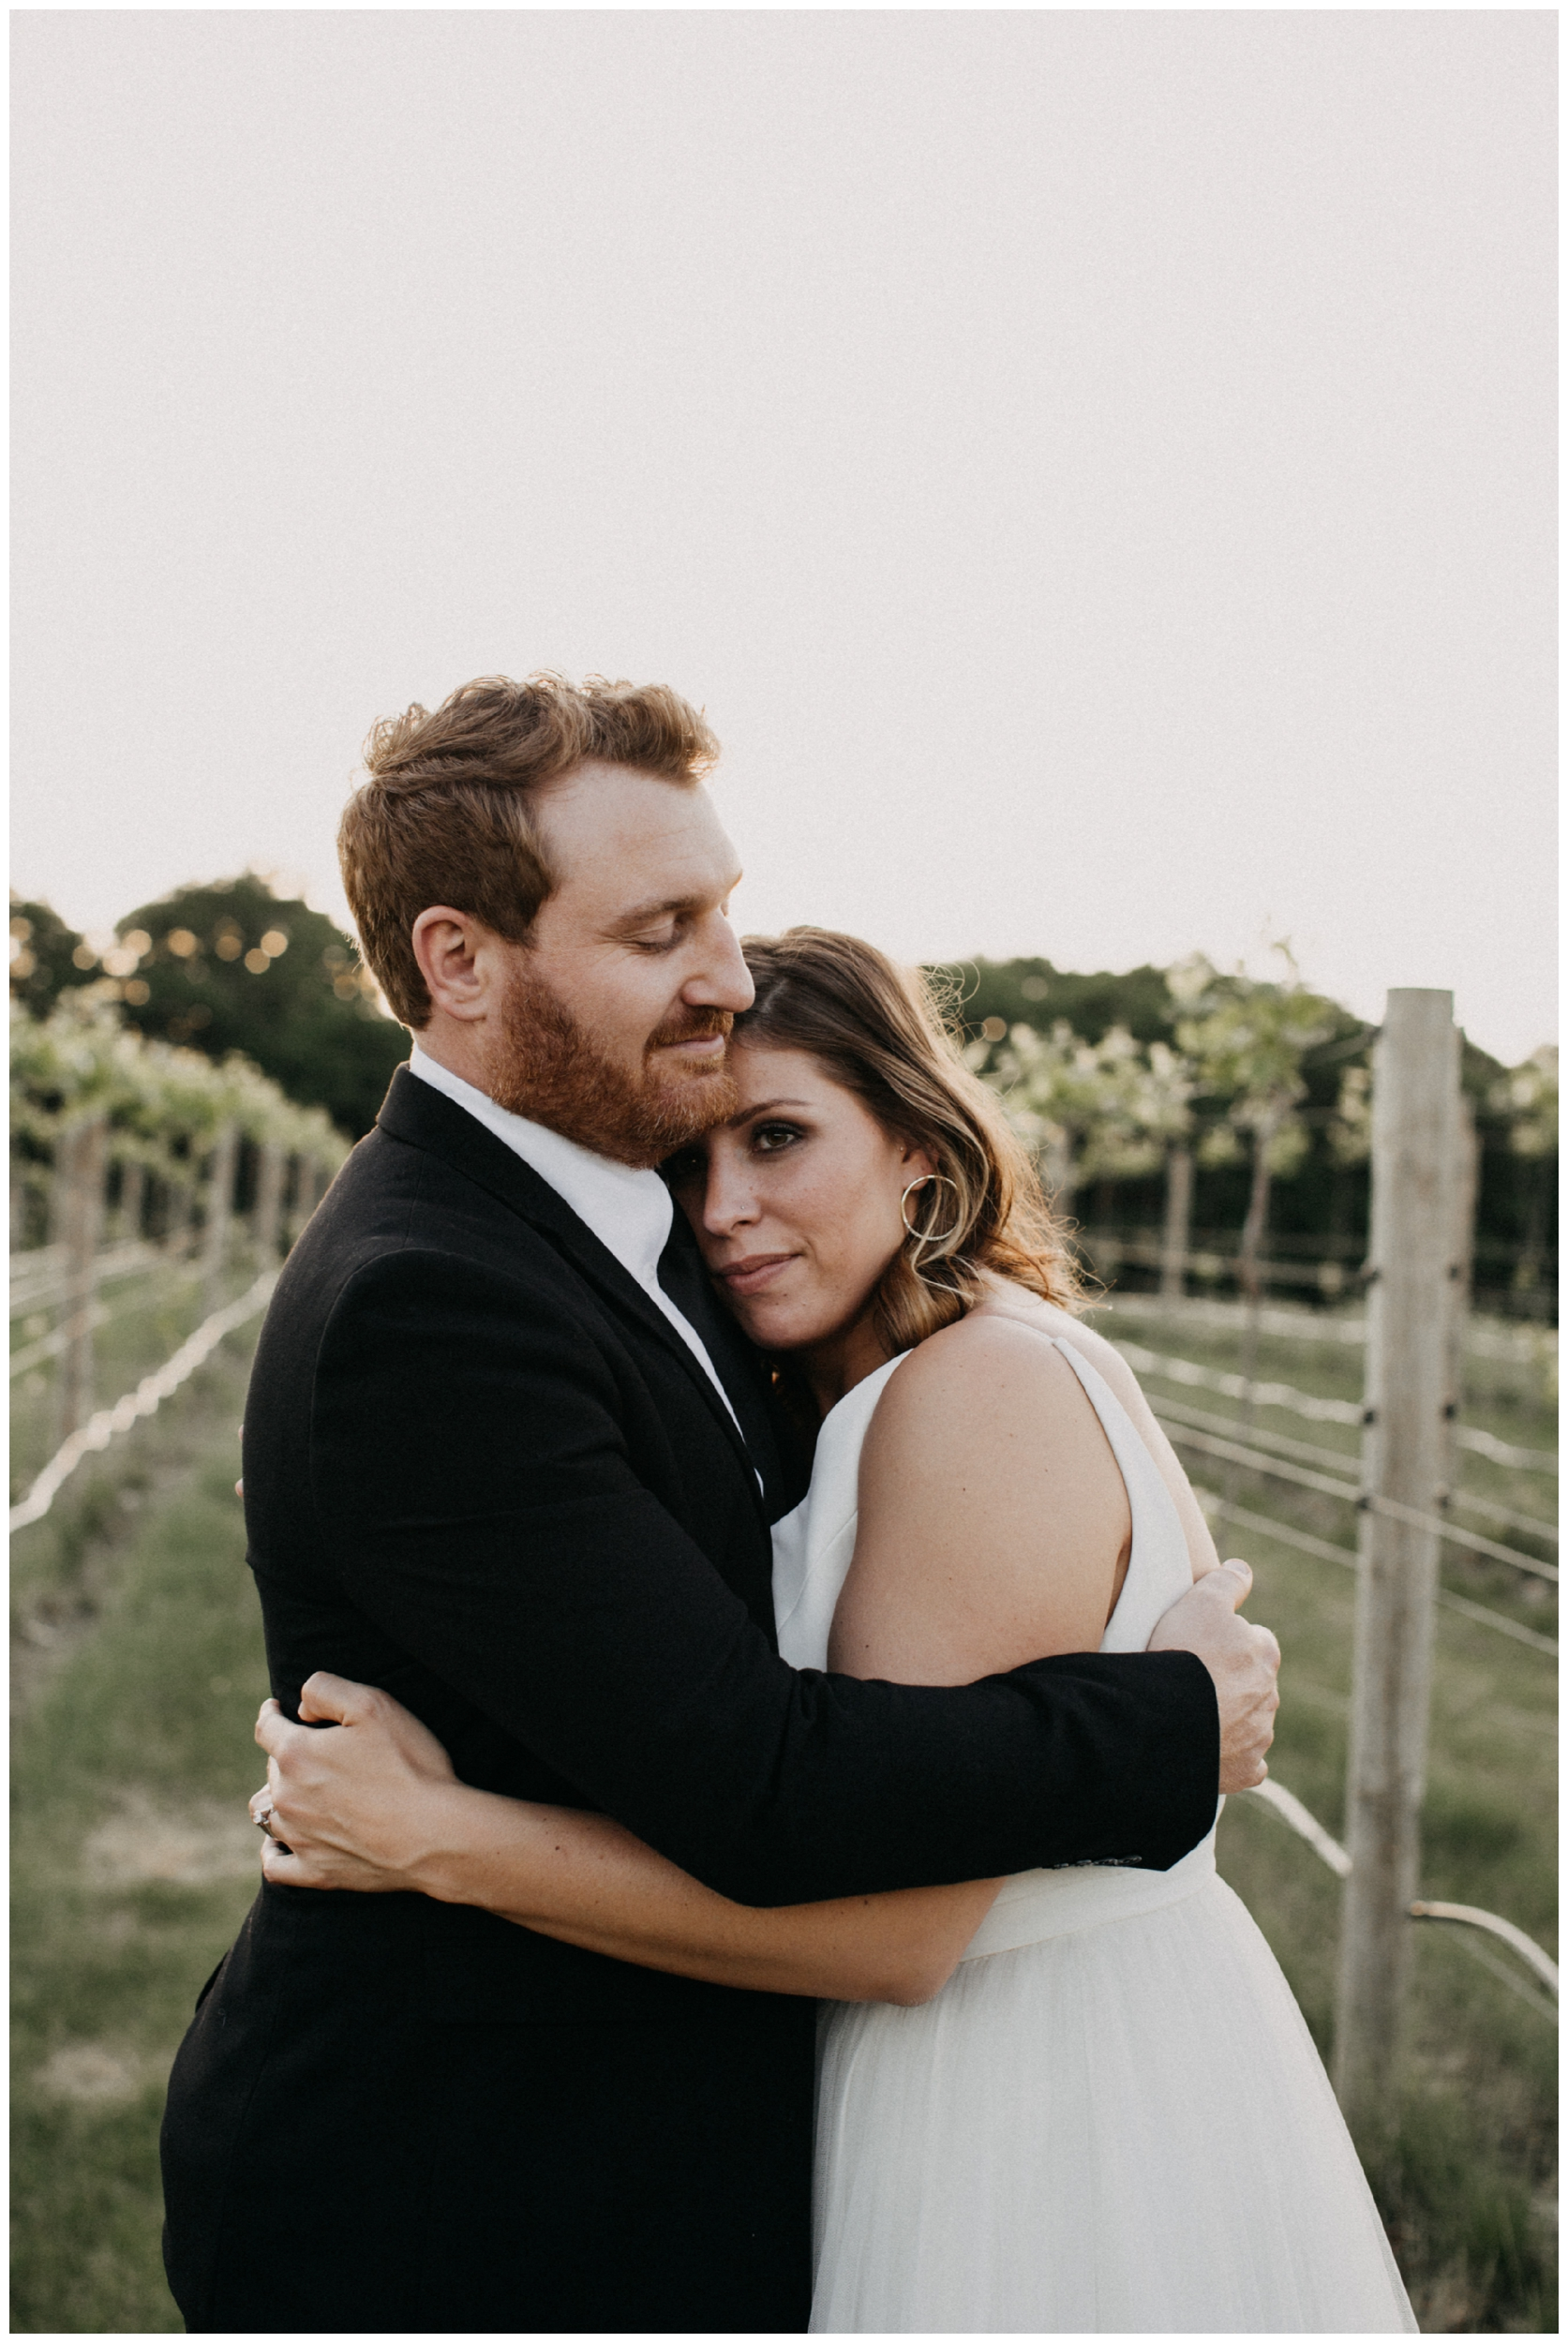 Romantic winery wedding in Minnesota